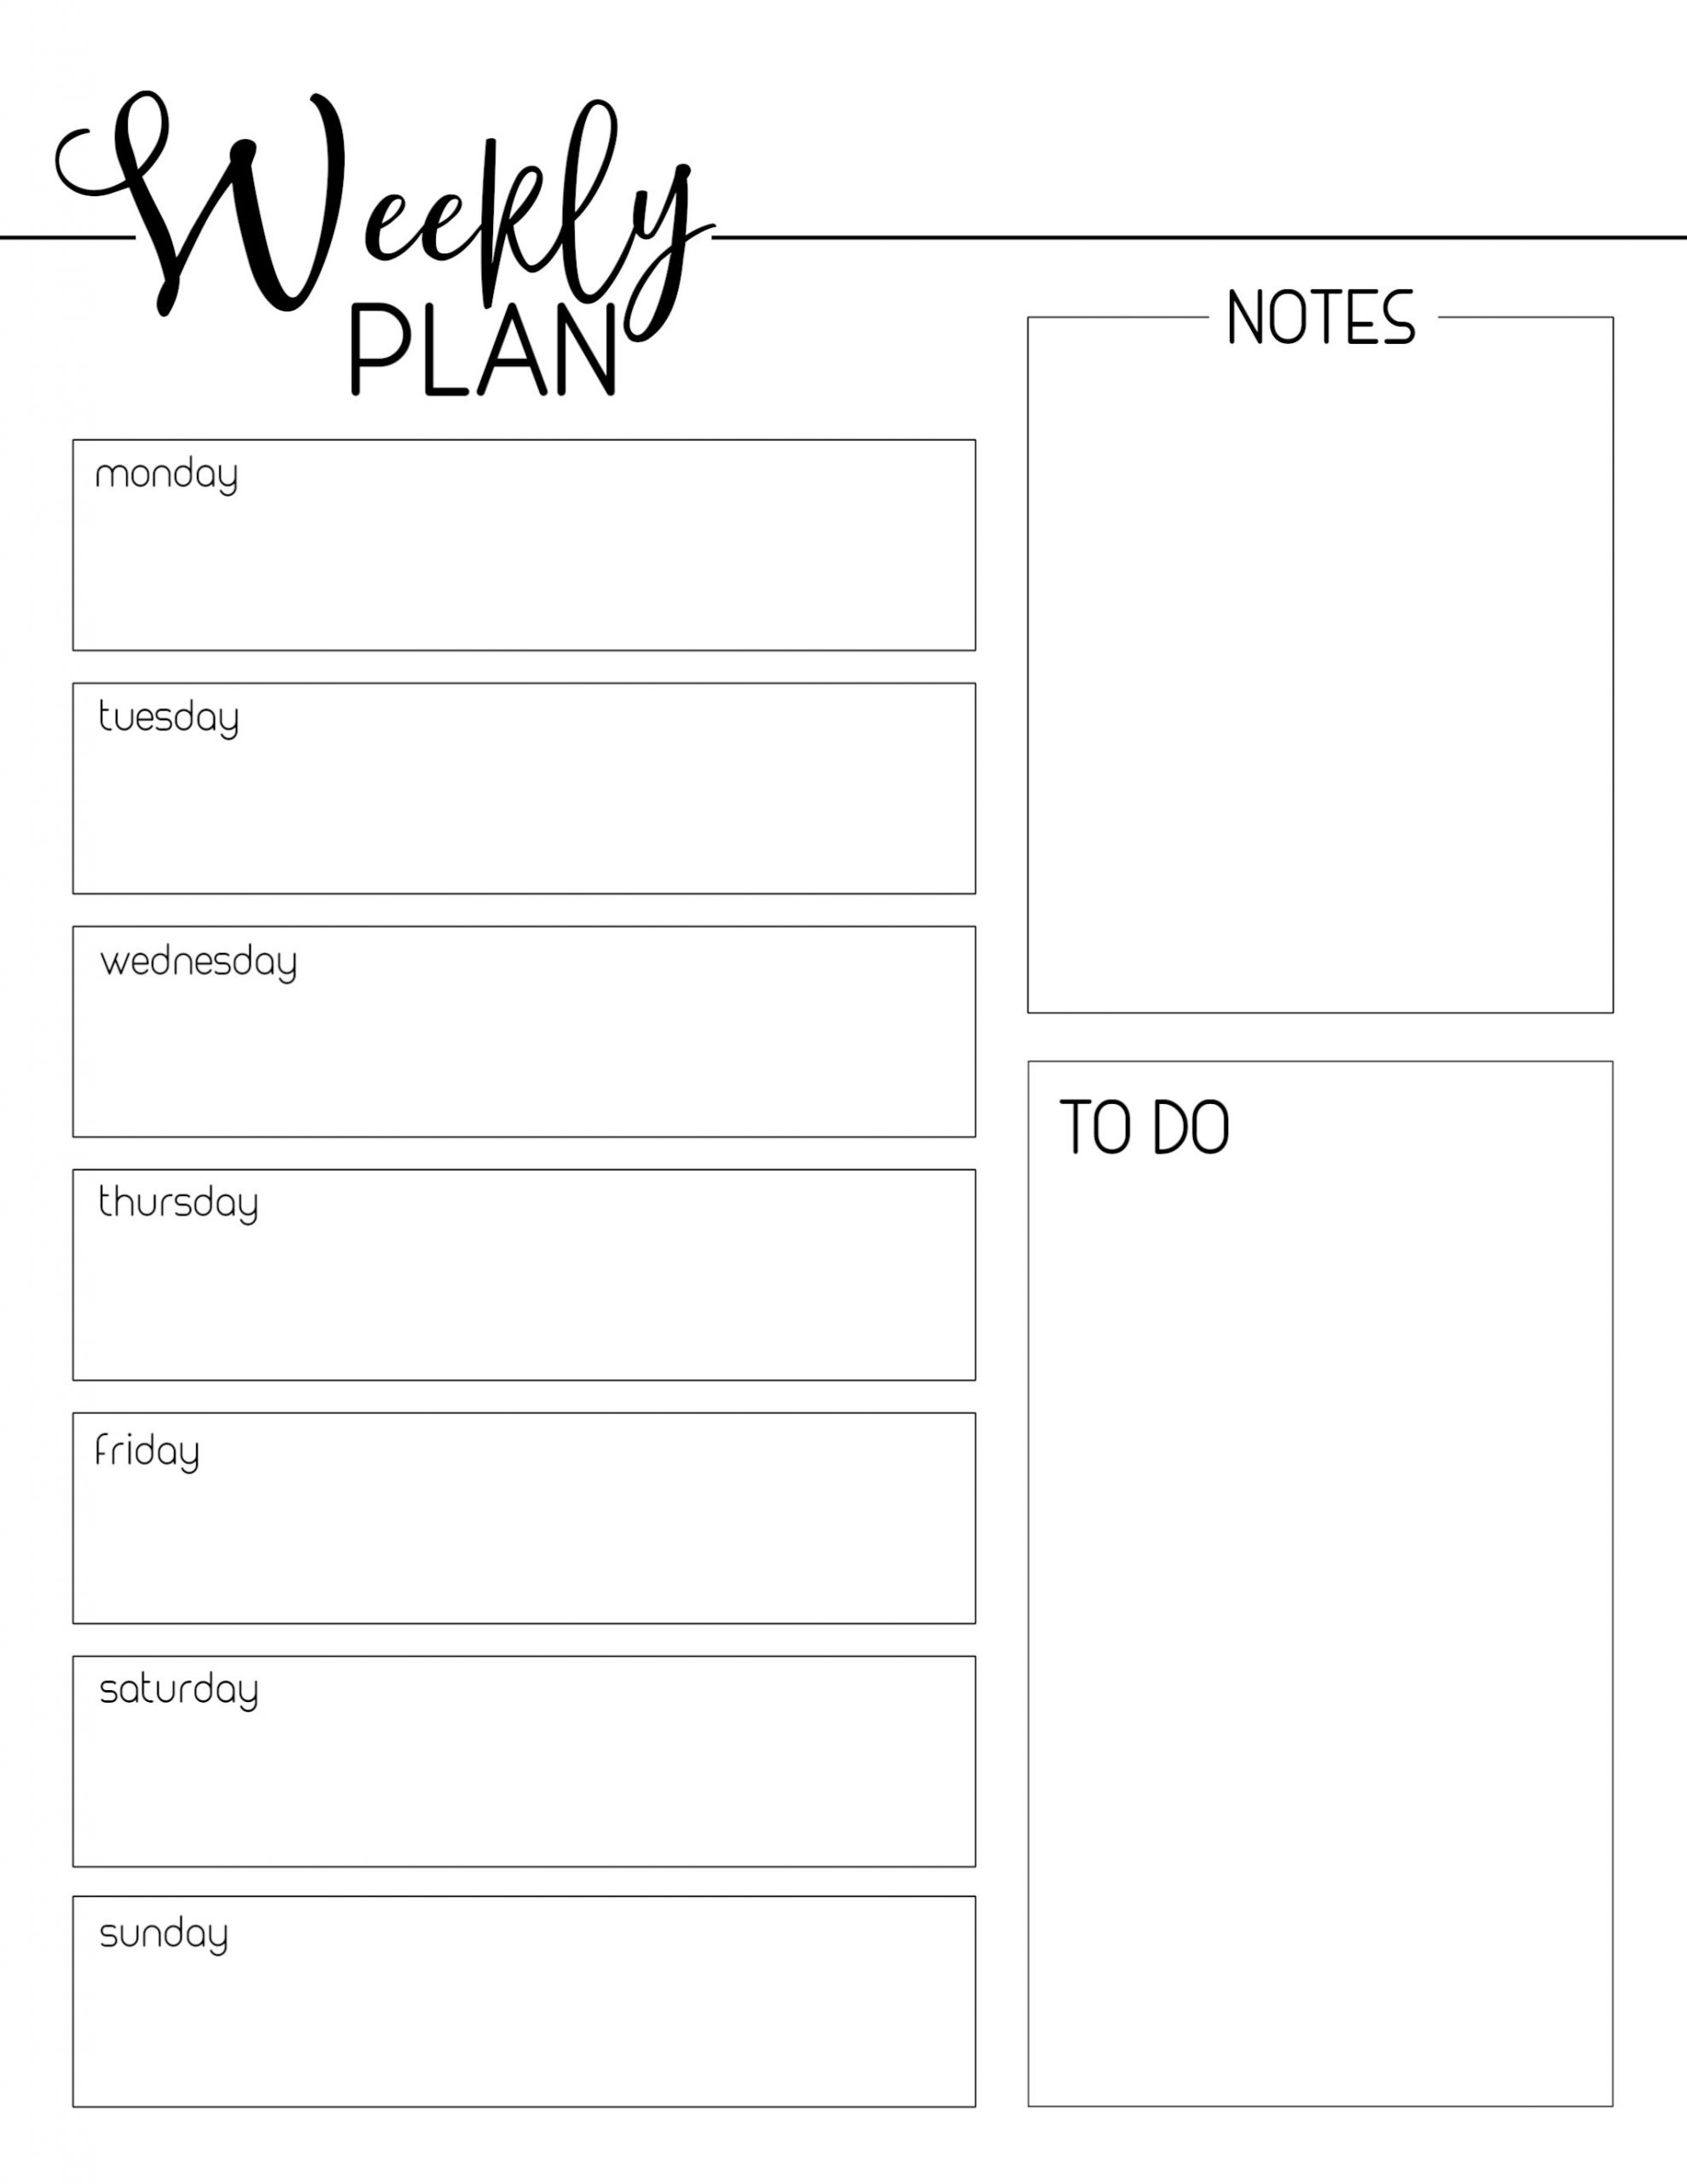 Monday Through Friday Planning Template | Example Calendar Monday Through Friday Planner Template